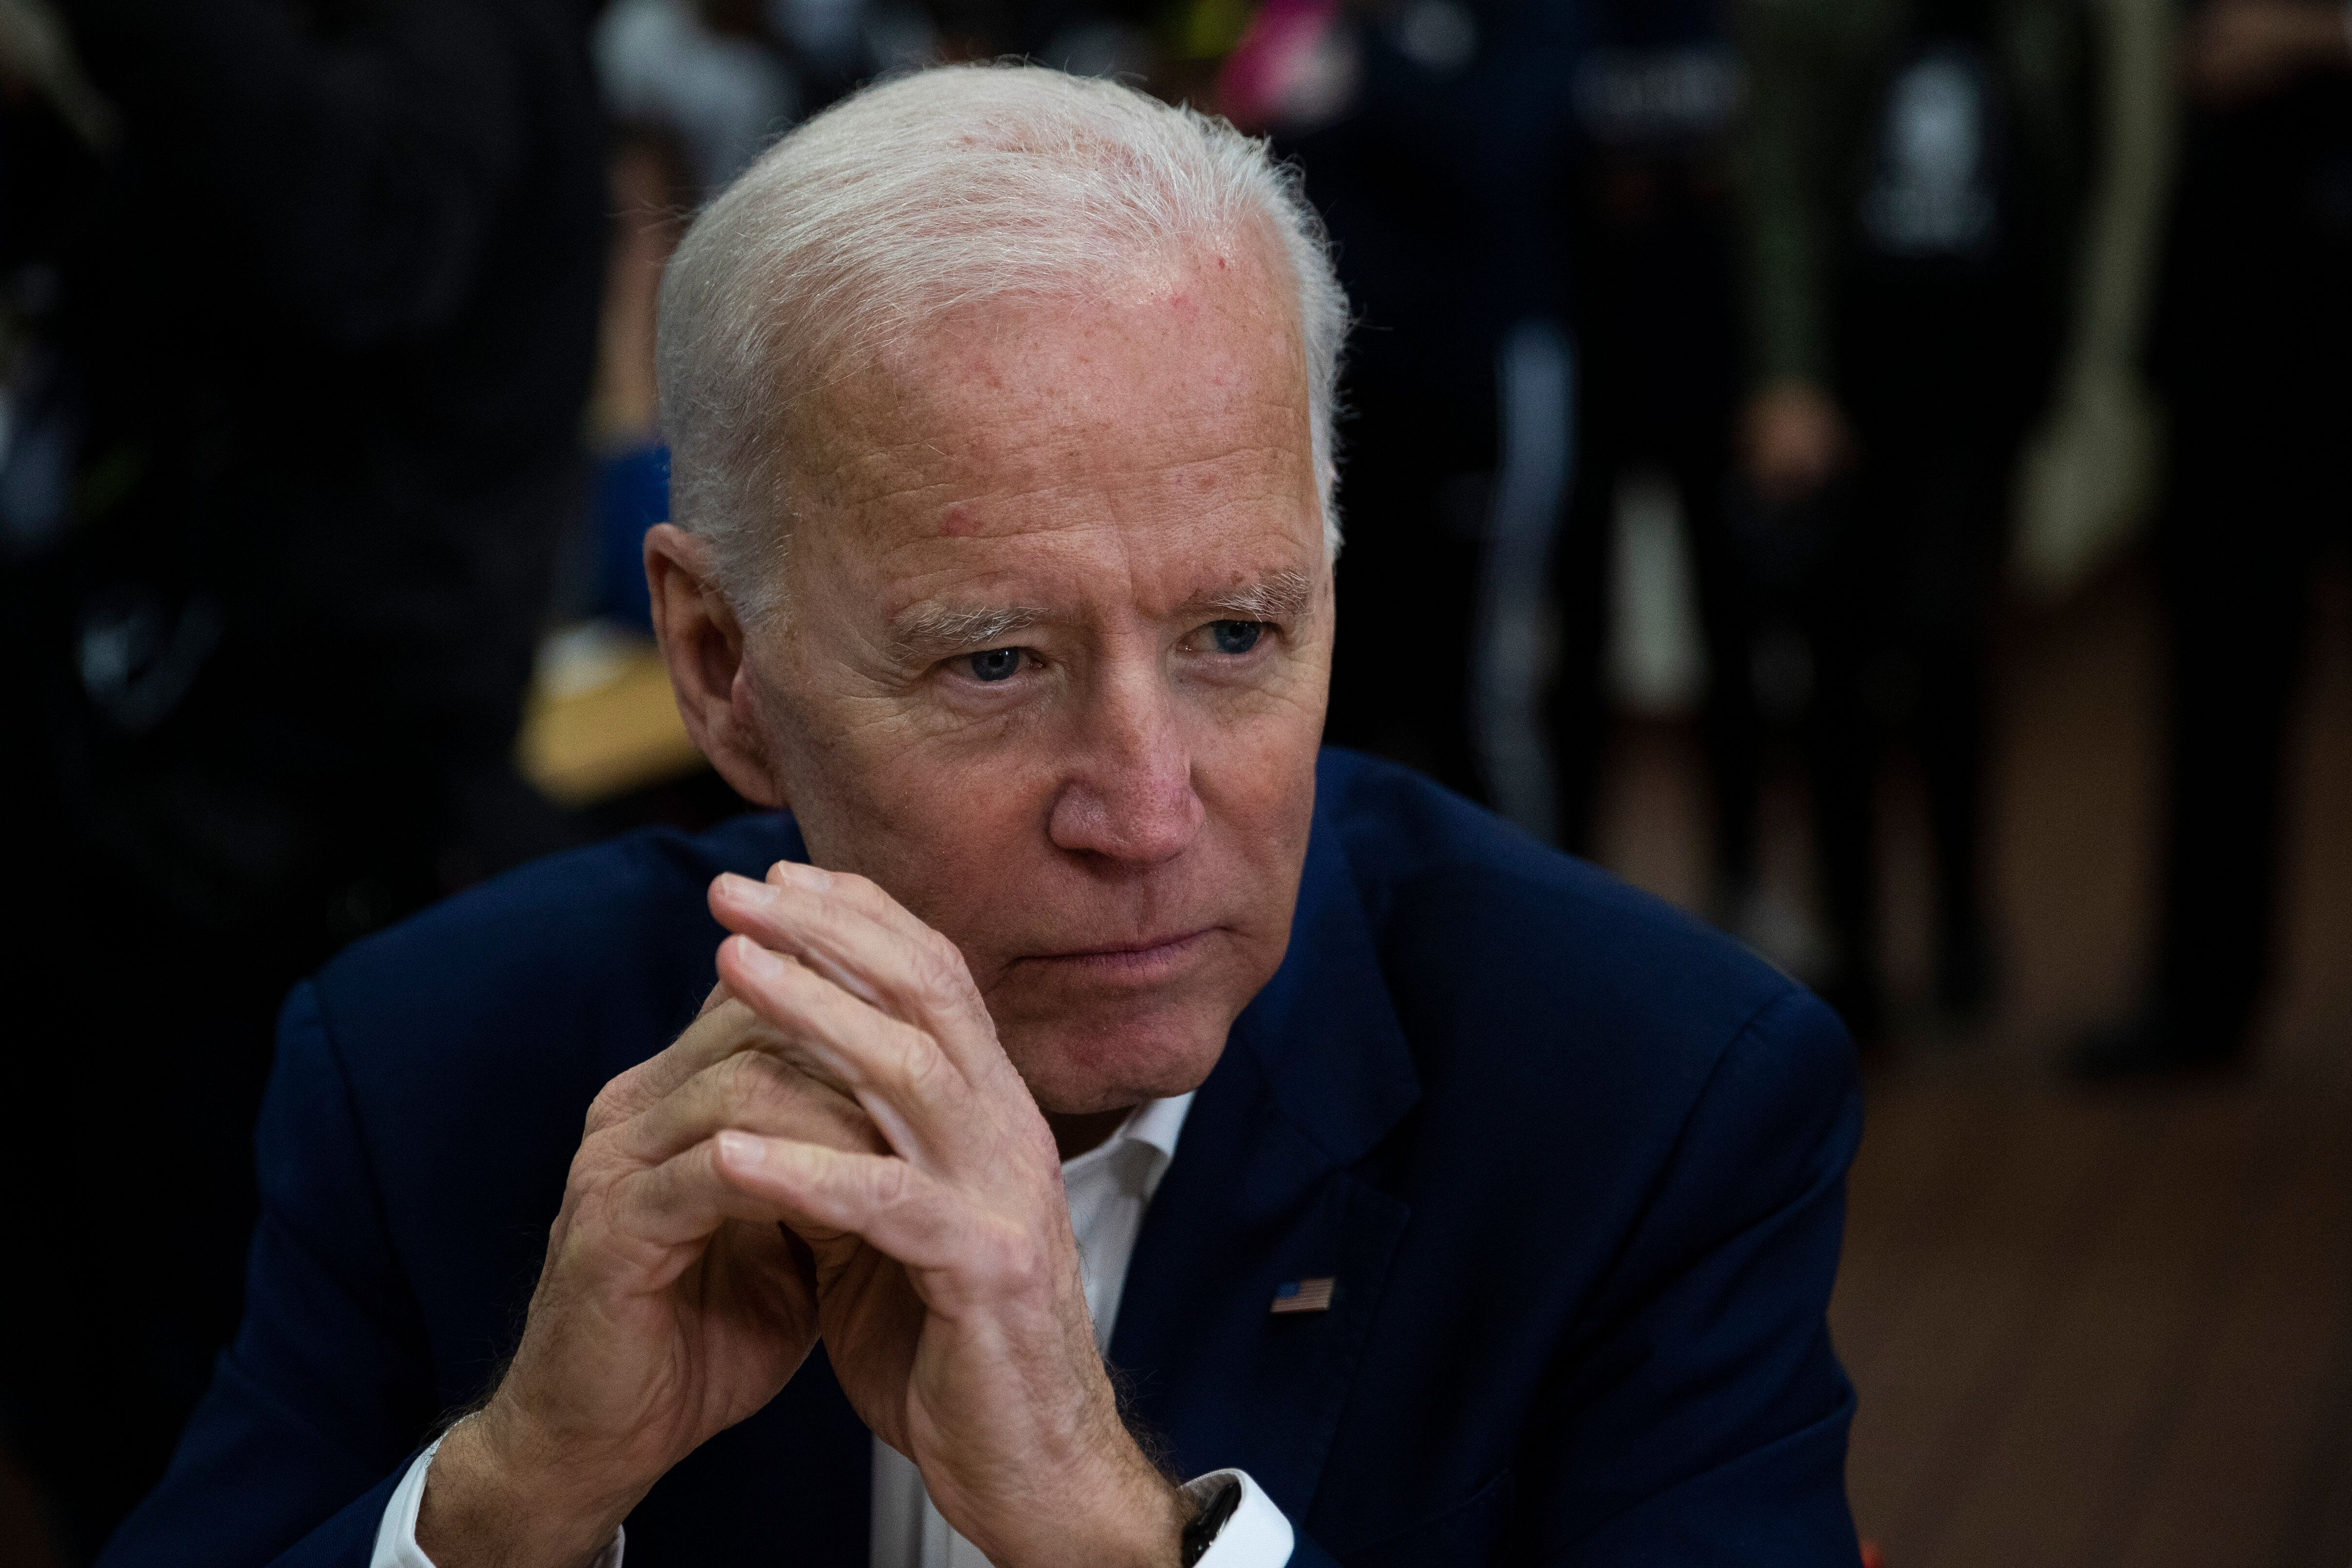 Former vice president and Democratic presidential candidate Joe Biden listens to a patron at a Mexican restaurant Wednesday, May 8, 2019, in Los Angeles. (AP Photo/Jae C. Hong)